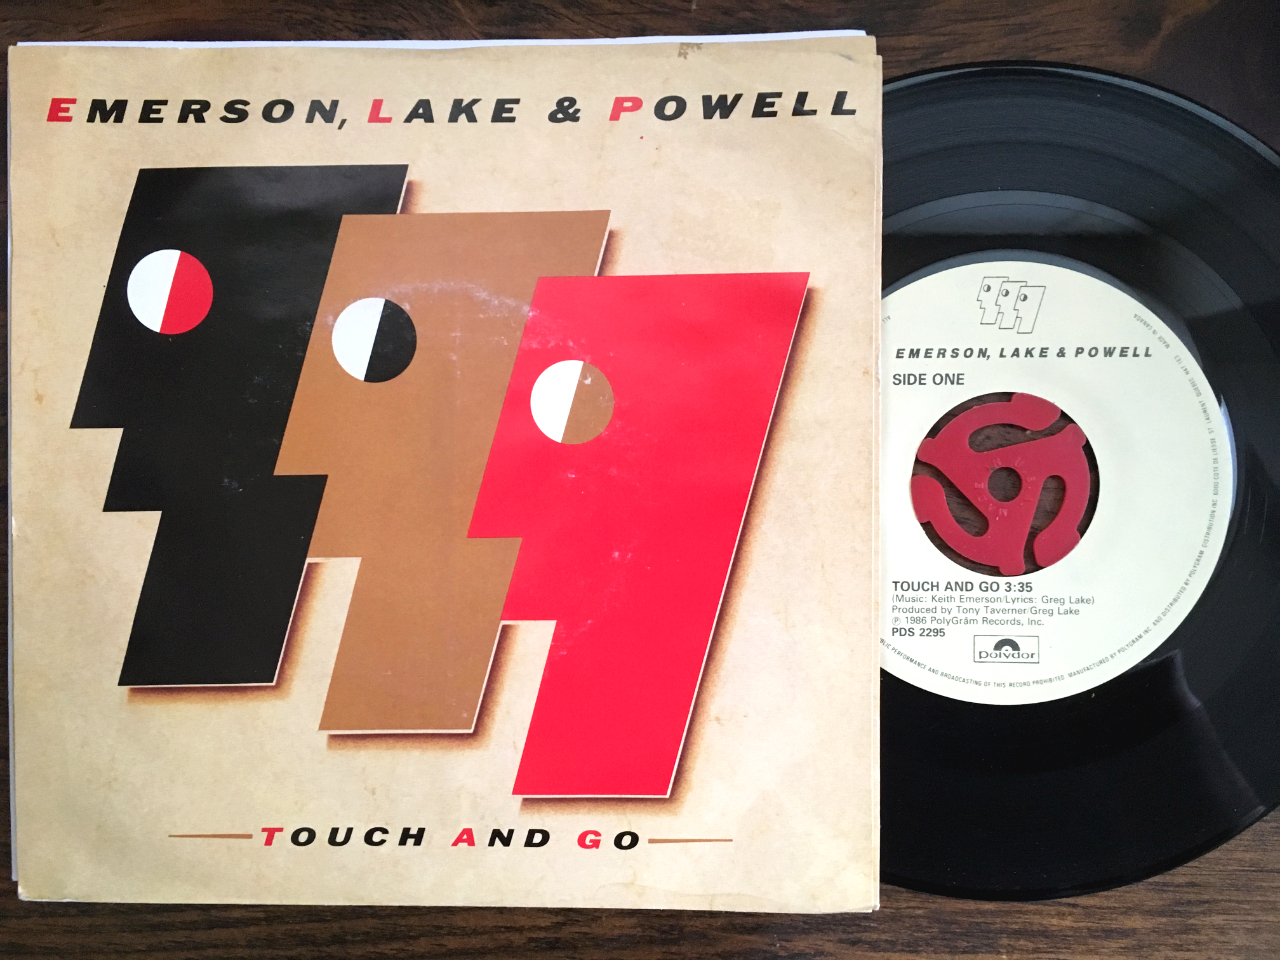 The Emerson Lake Powell Touch And Go 45 slightly out of its picture sleeve on a wooden surface.